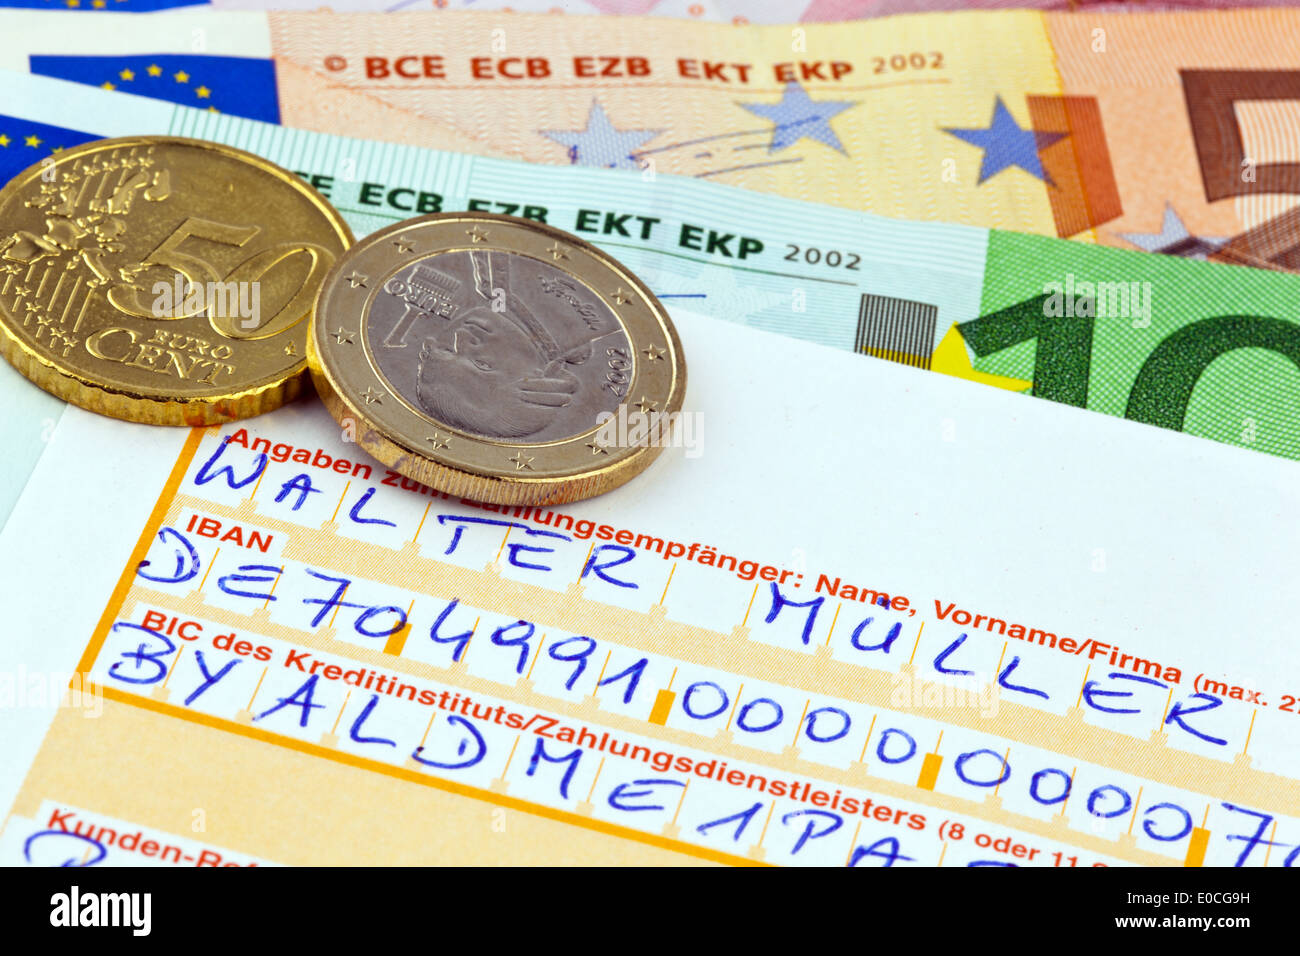 A form for money transfer with number IBAN and code BIC in Germany - Stock Image